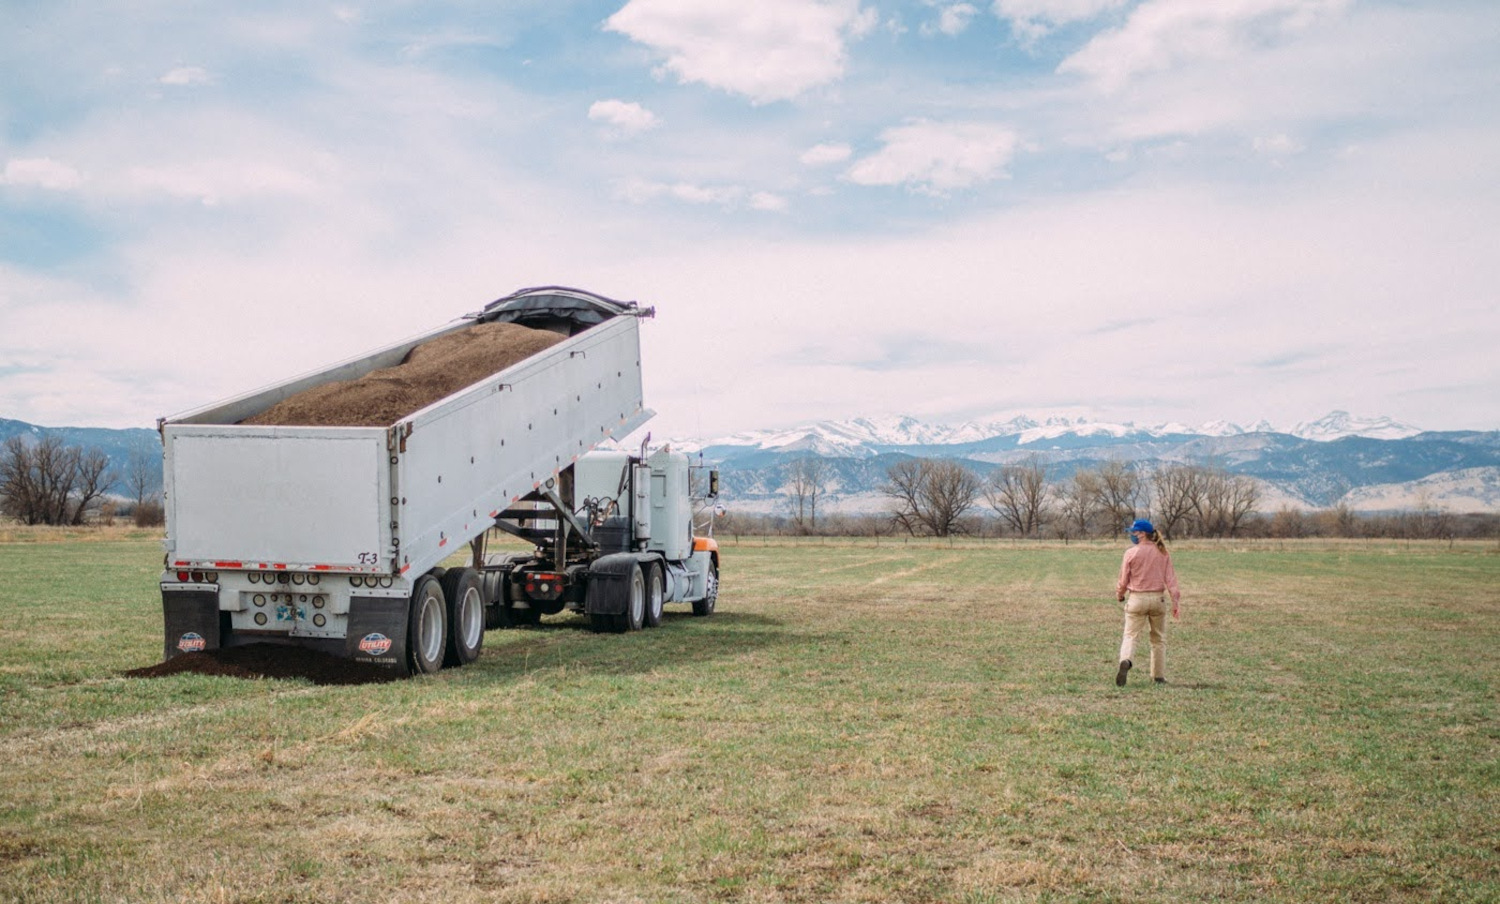 Participating restaurants in Colorado are donating one percent of their meal to support local climate farming projects with Restore Colorado.